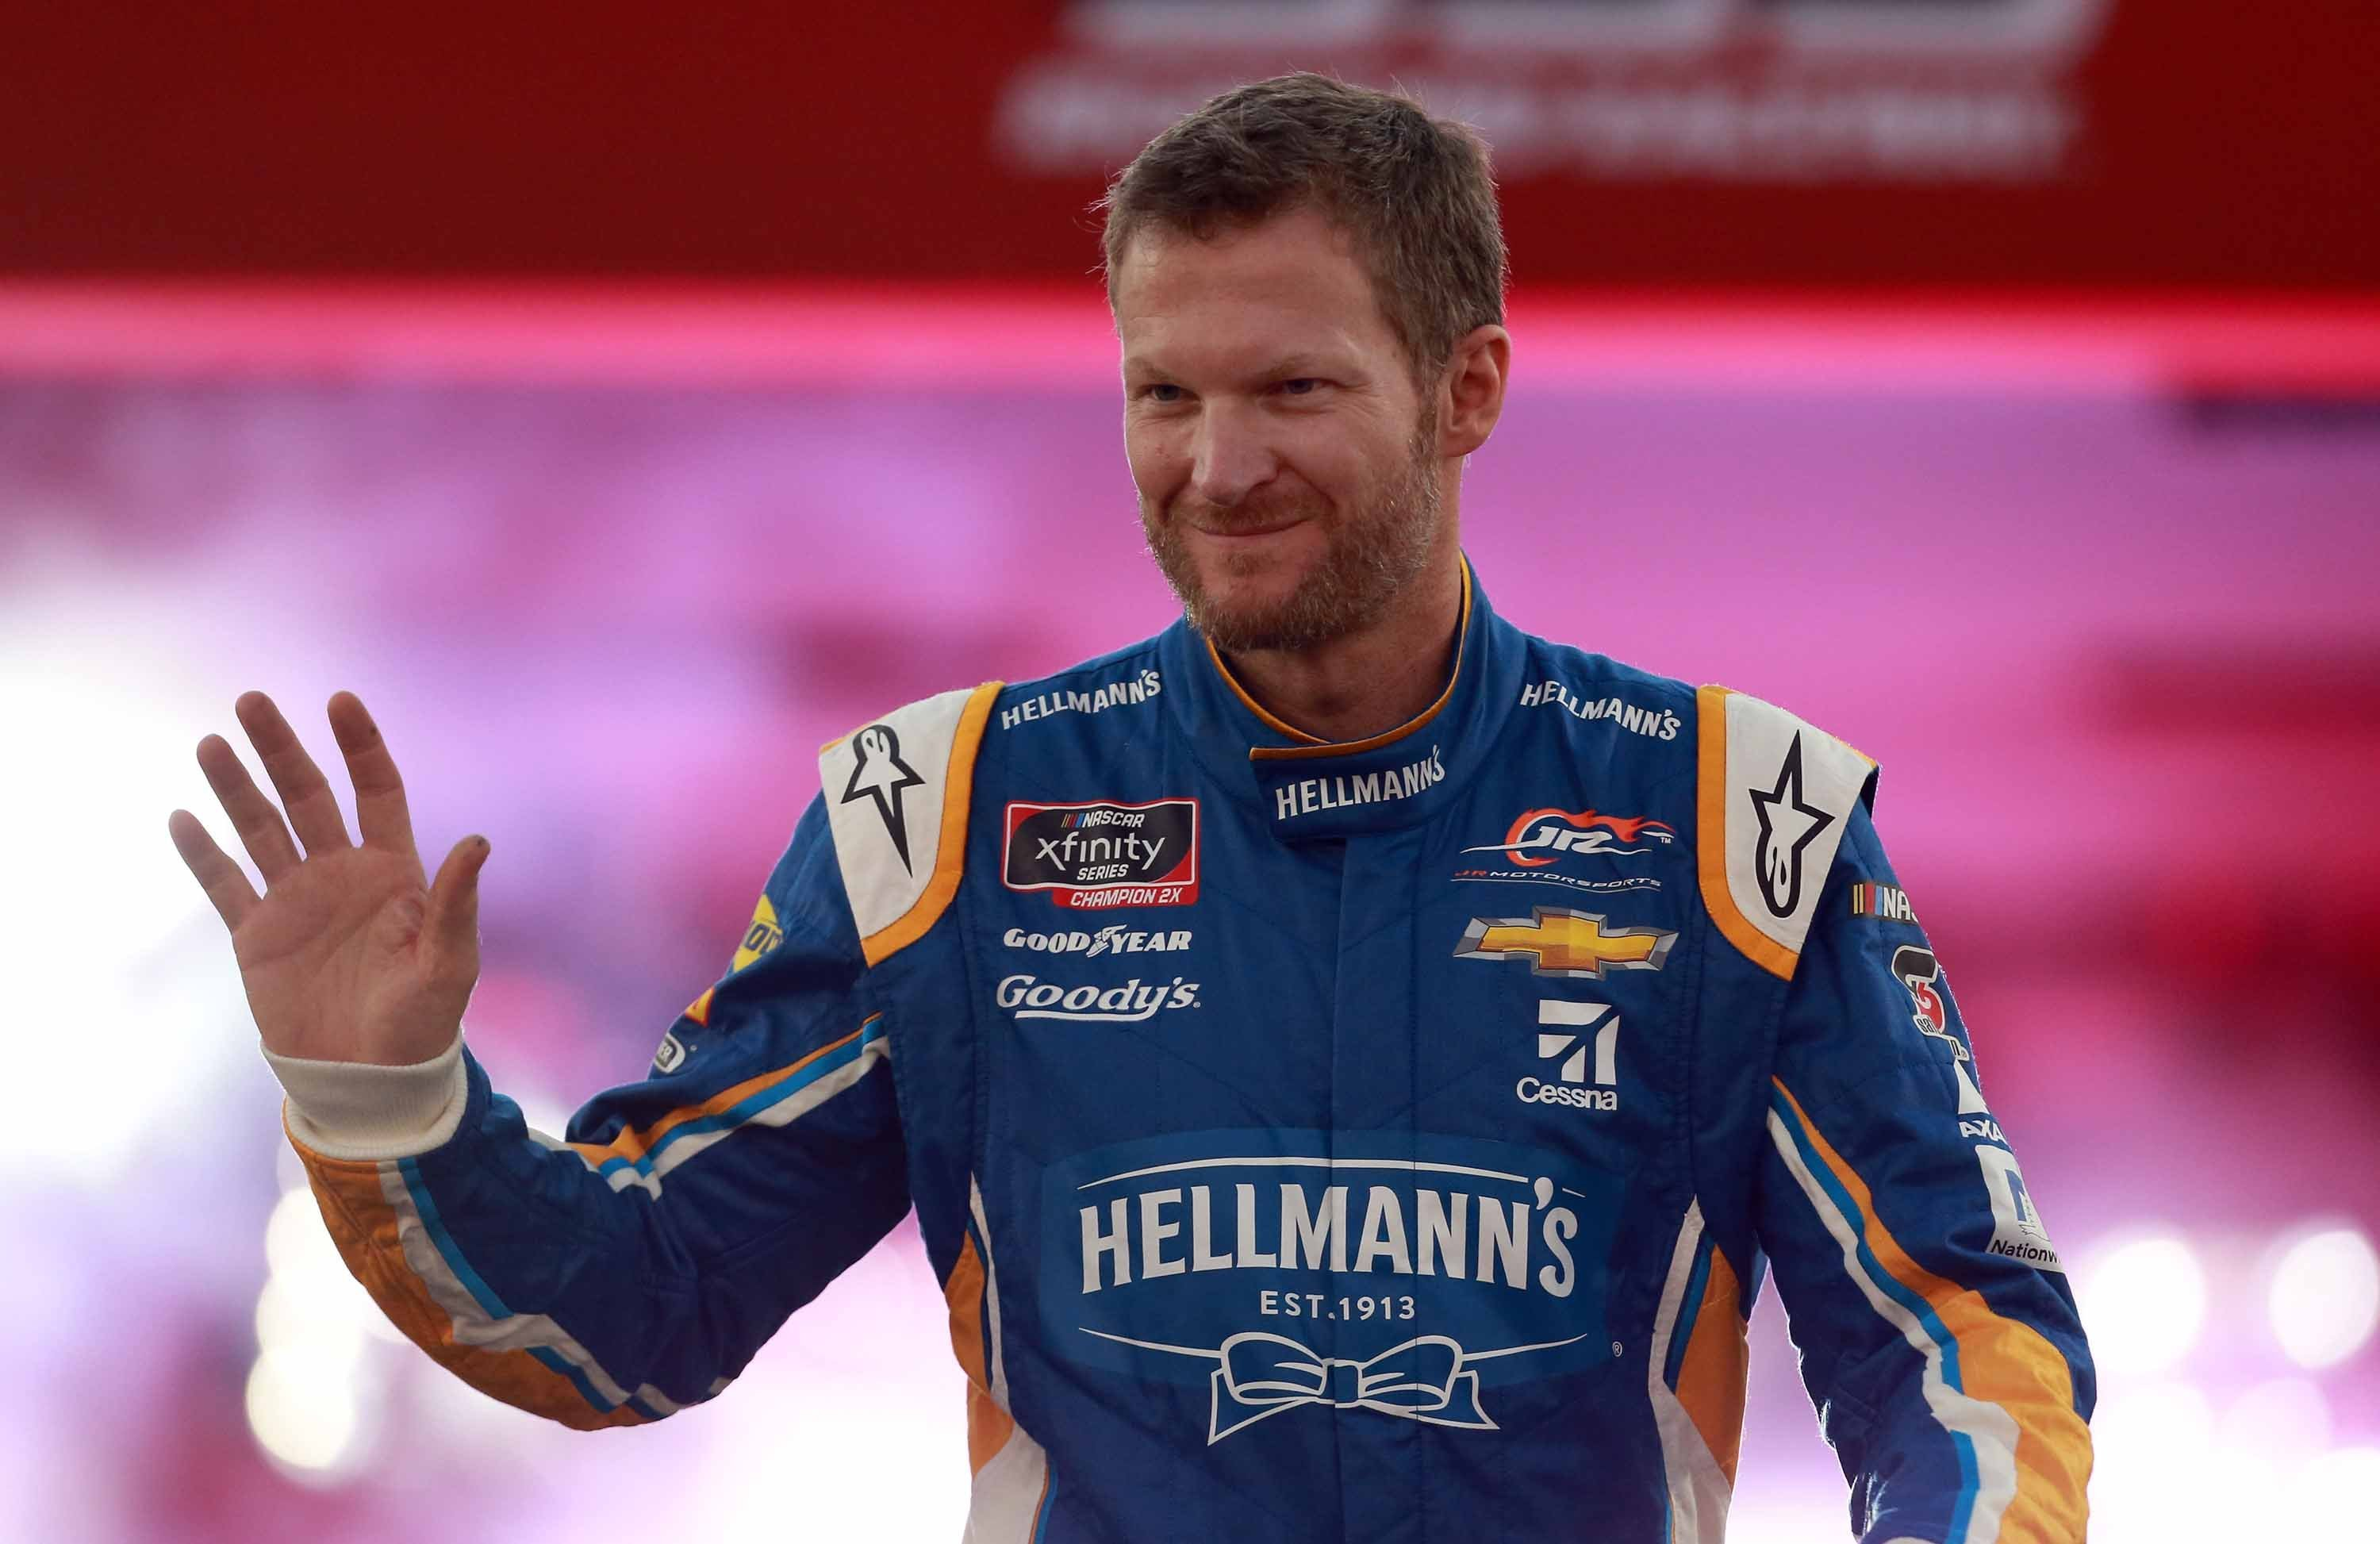 Dale Earnhardt Jr. still has sore back but plans on racing at Darlington